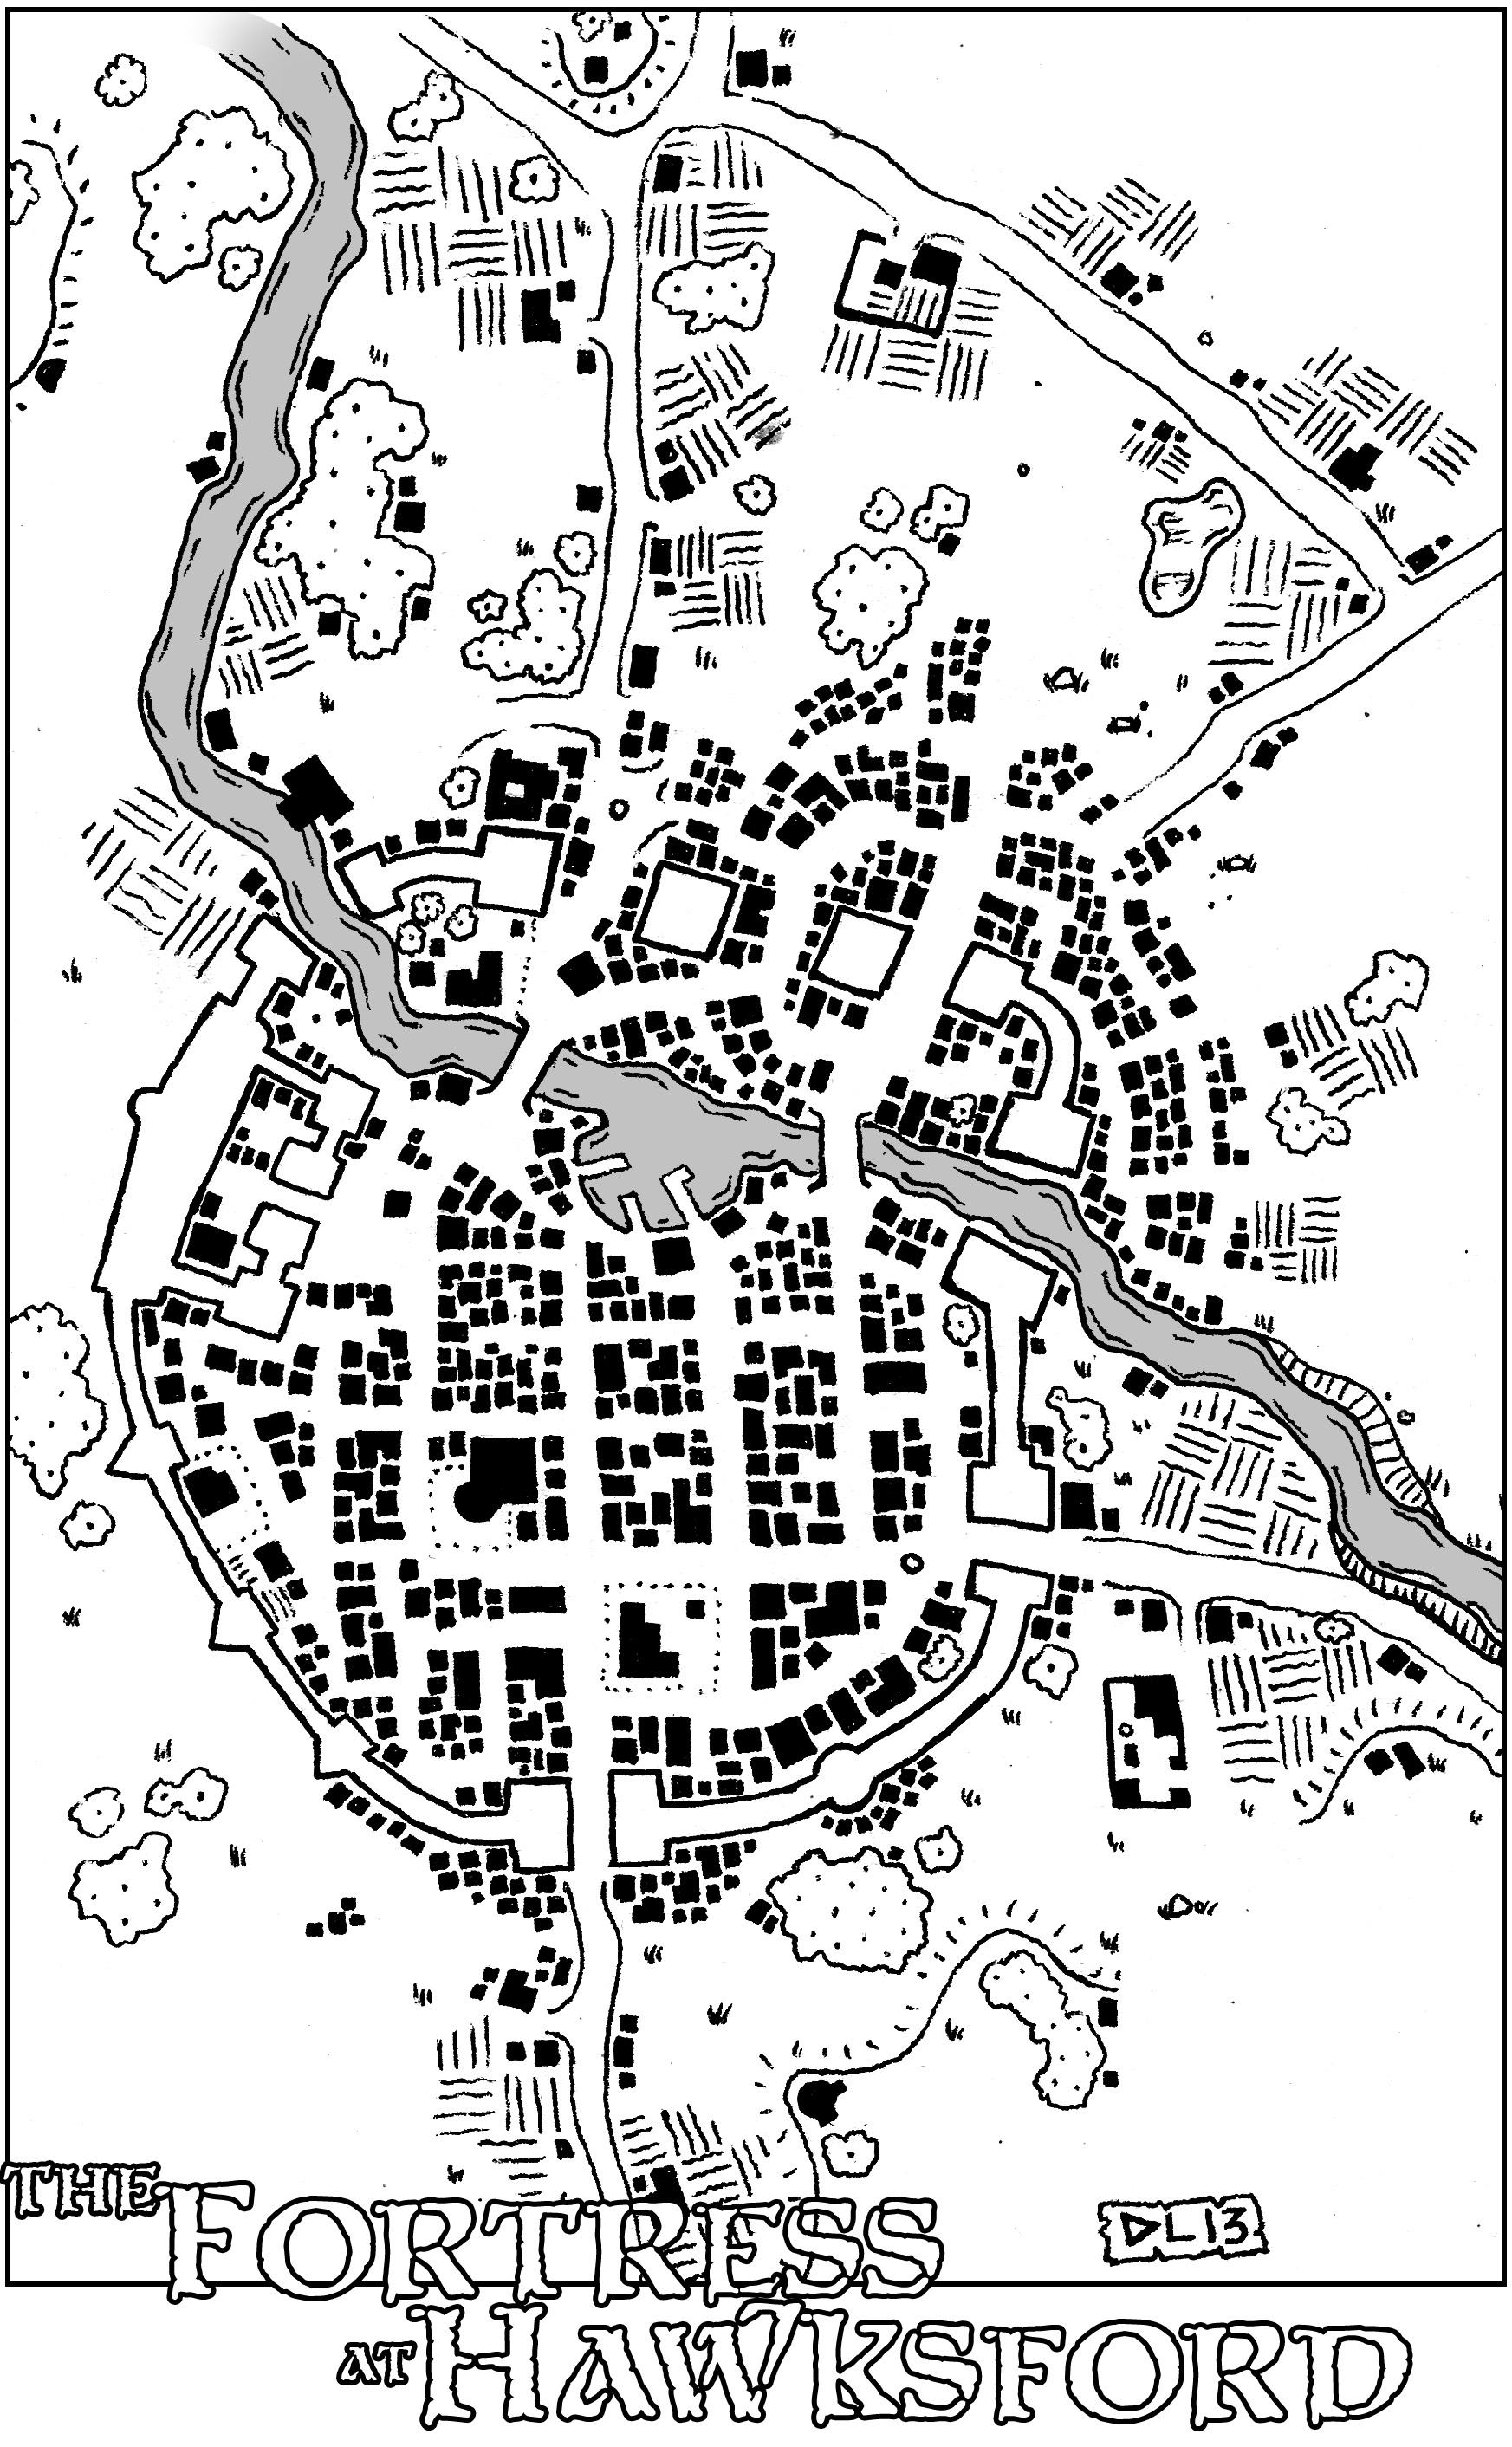 Friday Map The Fortress At Hawksford